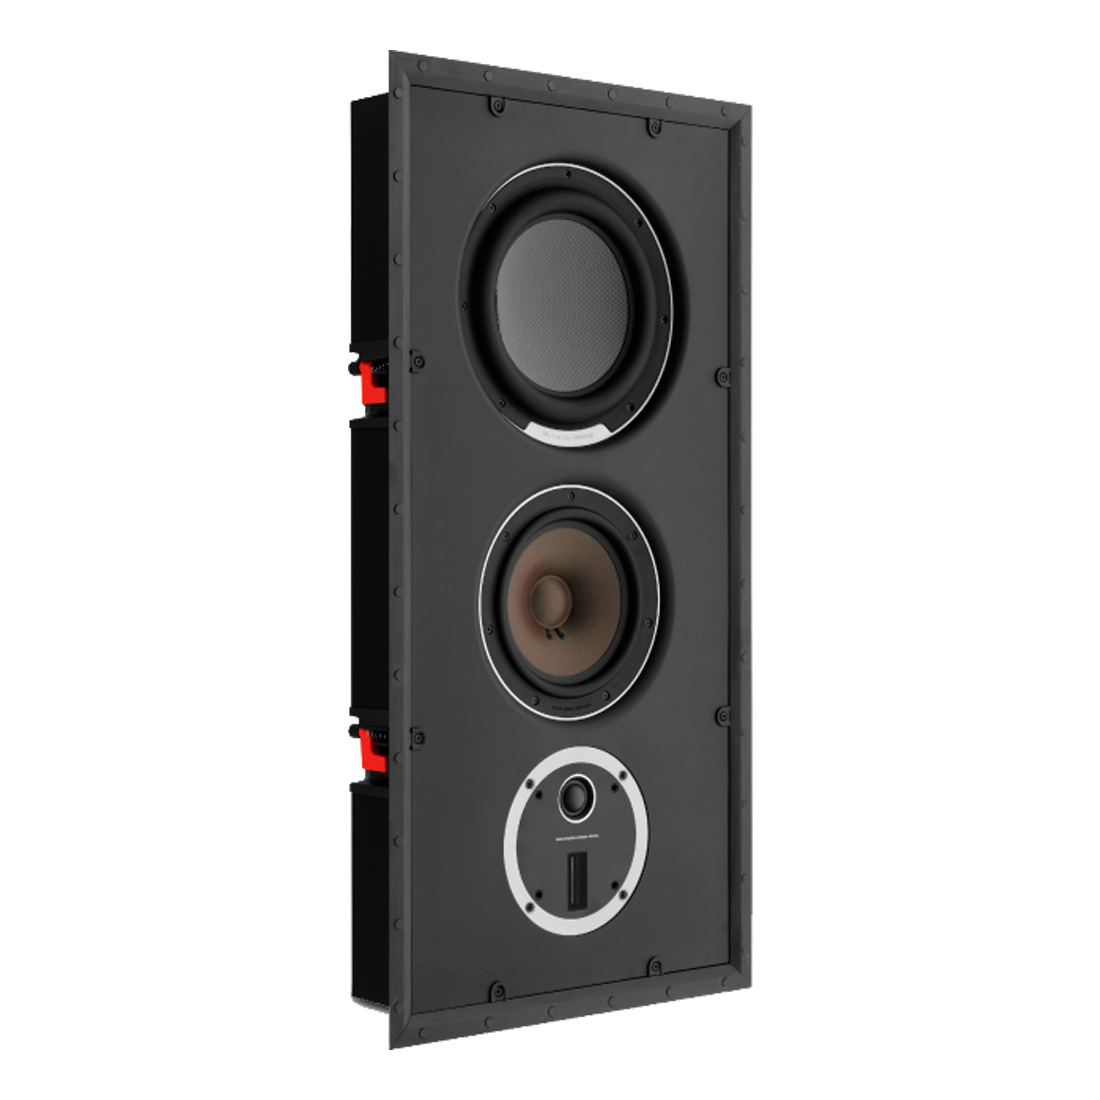 DALI PHANTOM S-180 HIGH PERFORMANCE IN WALL SPEAKER